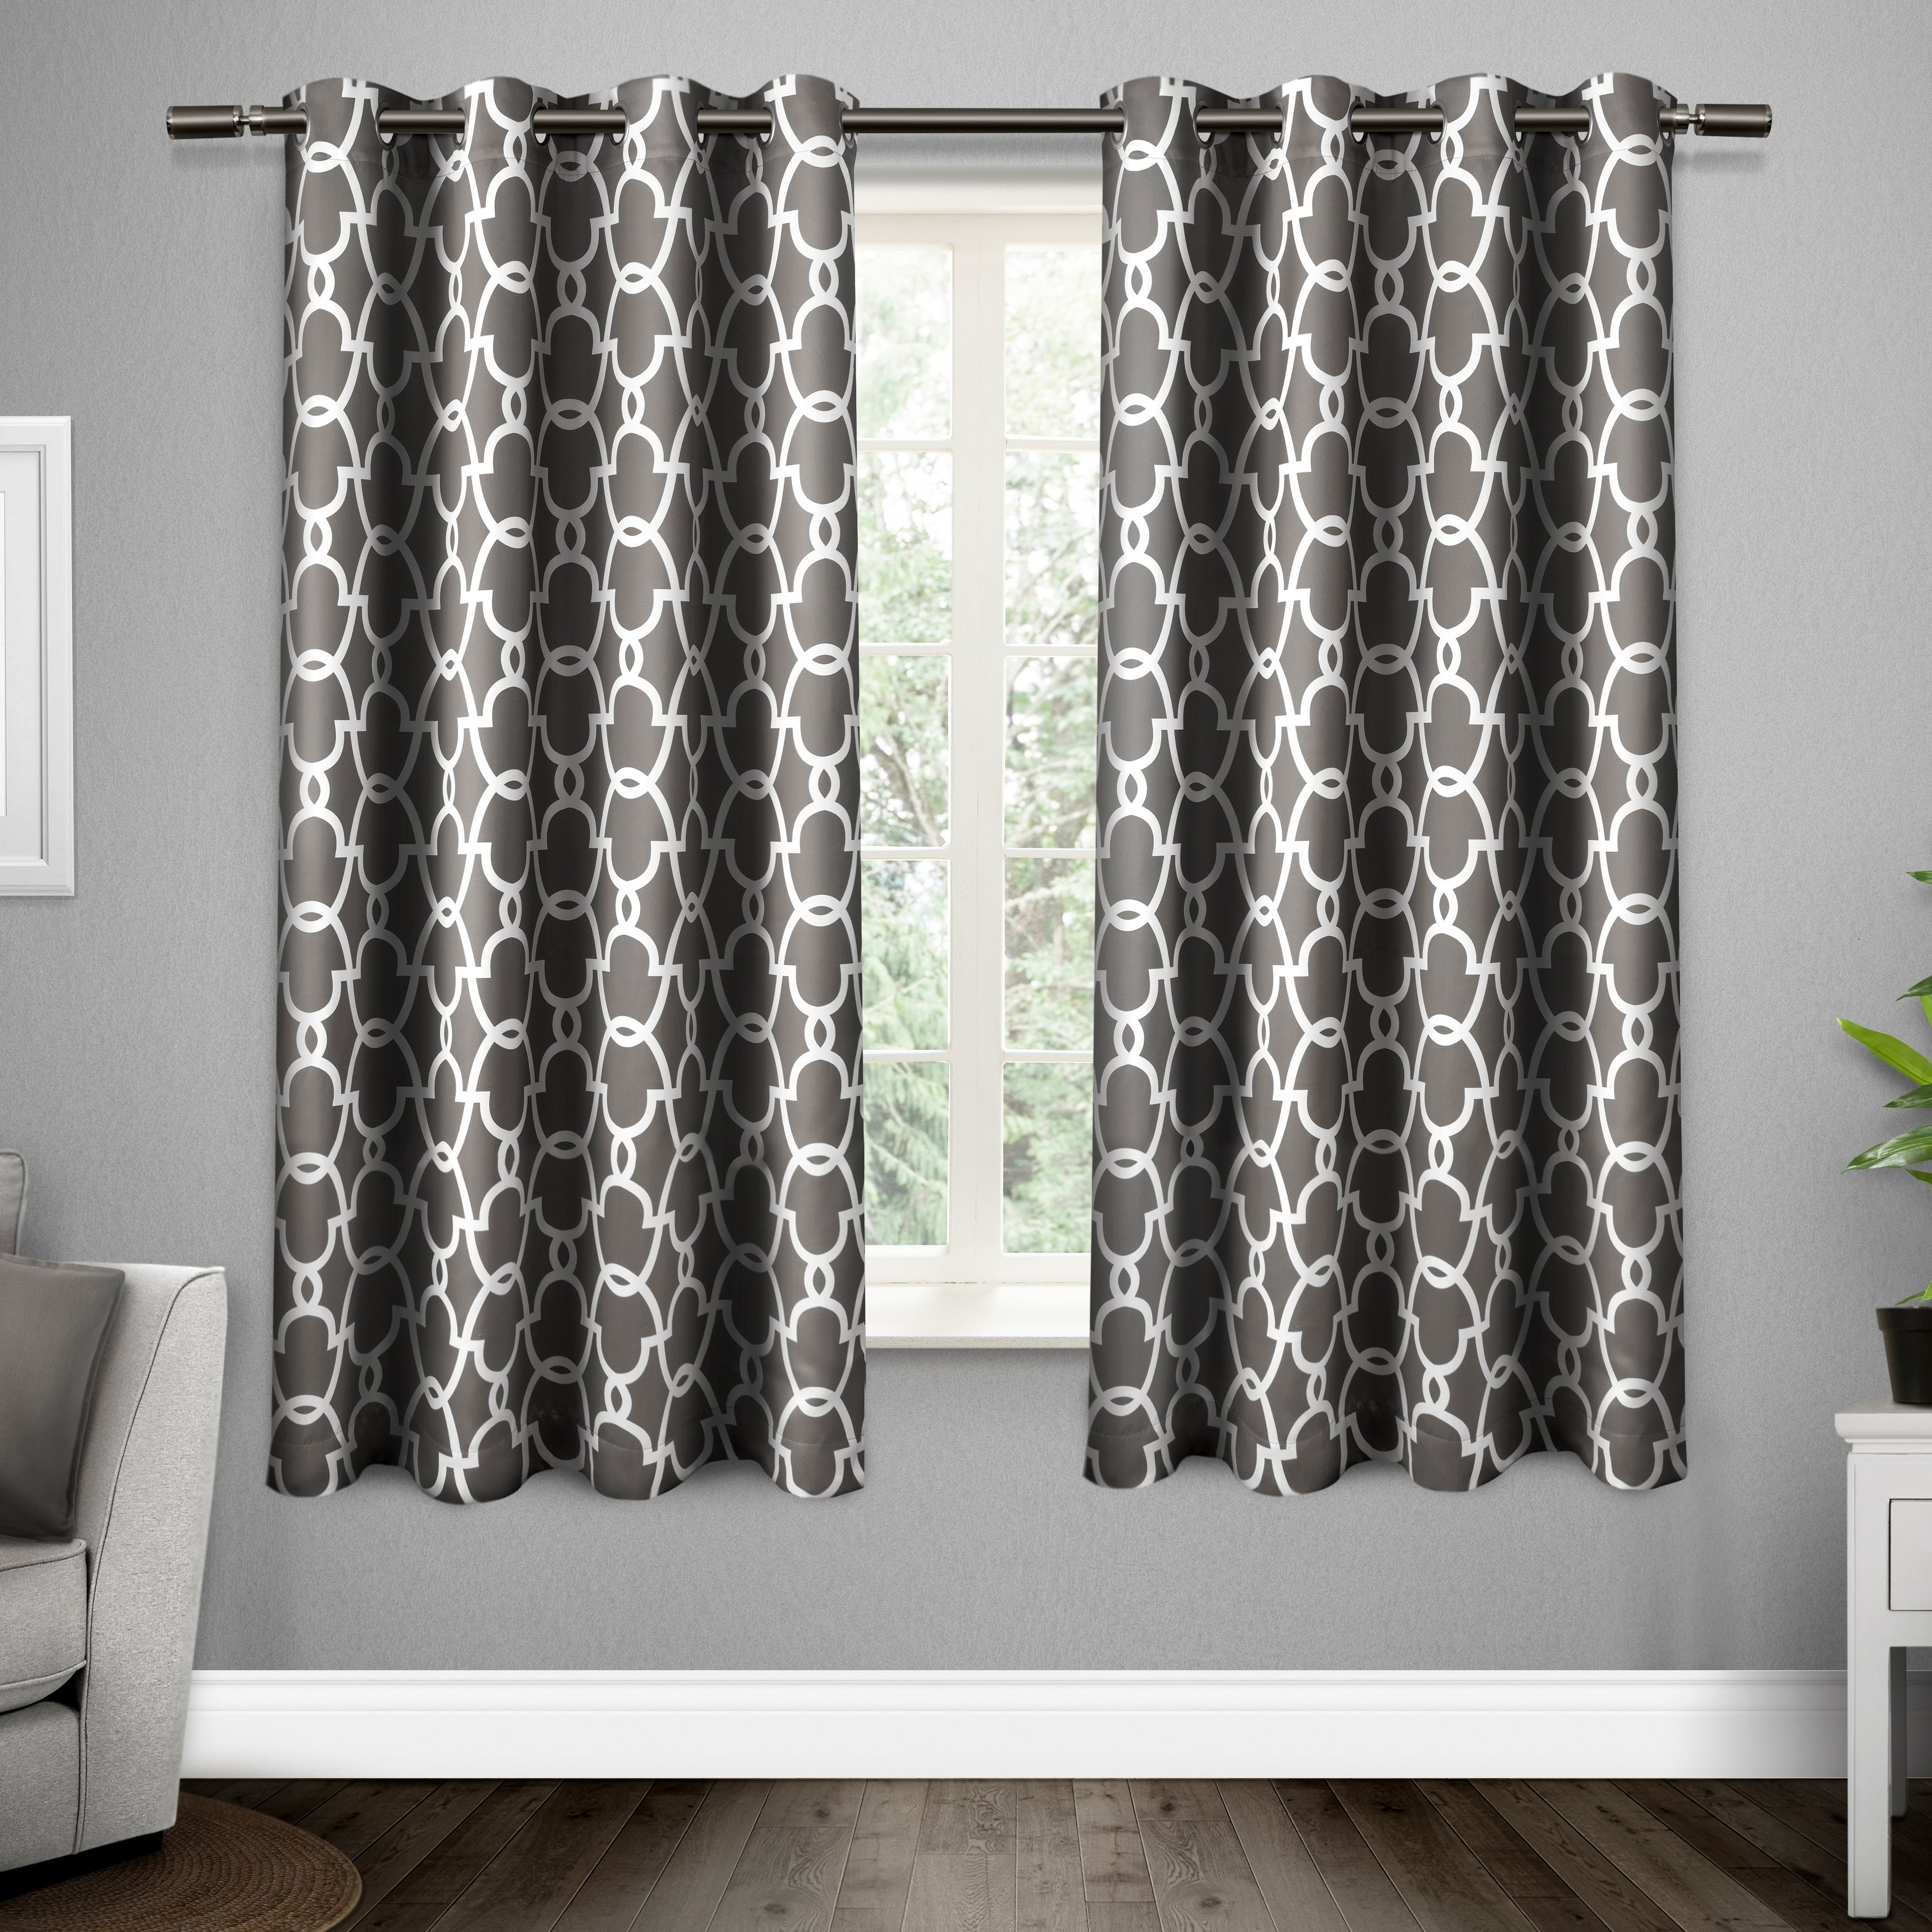 Ati Home Gates Thermal Woven Blackout Grommet Top Curtain Panel Pair In Black Pearl – 52 X 63 (as Is Item) Throughout Easton Thermal Woven Blackout Grommet Top Curtain Panel Pairs (View 16 of 20)